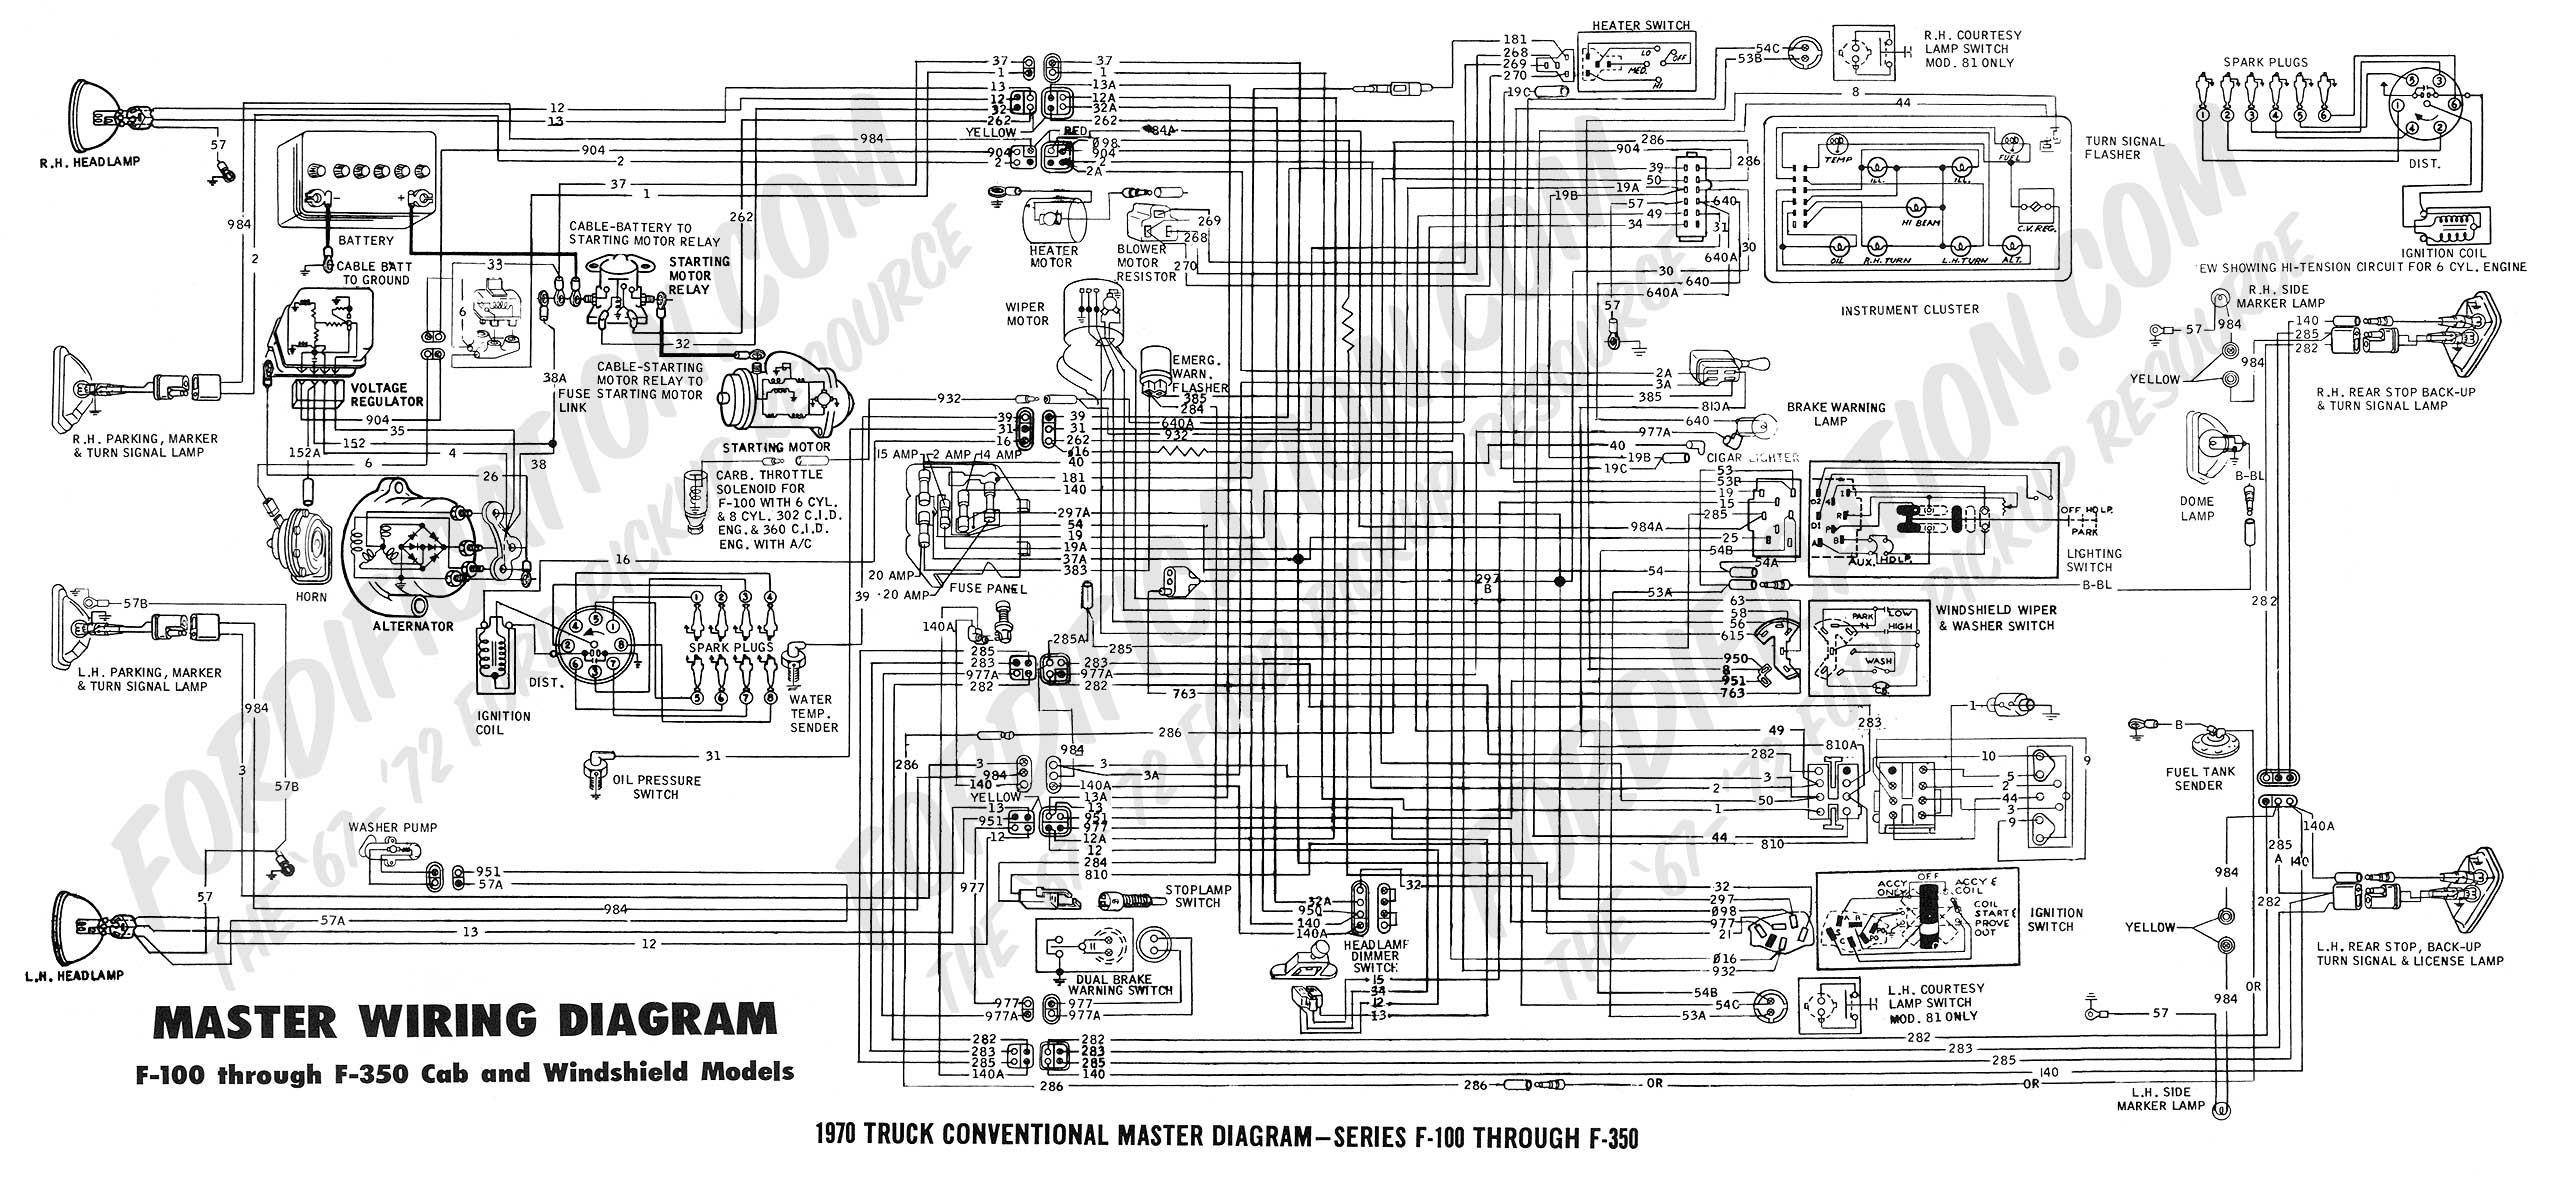 wiring diagram 70_master ford truck technical drawings and schematics section h wiring ford wiring schematics at virtualis.co